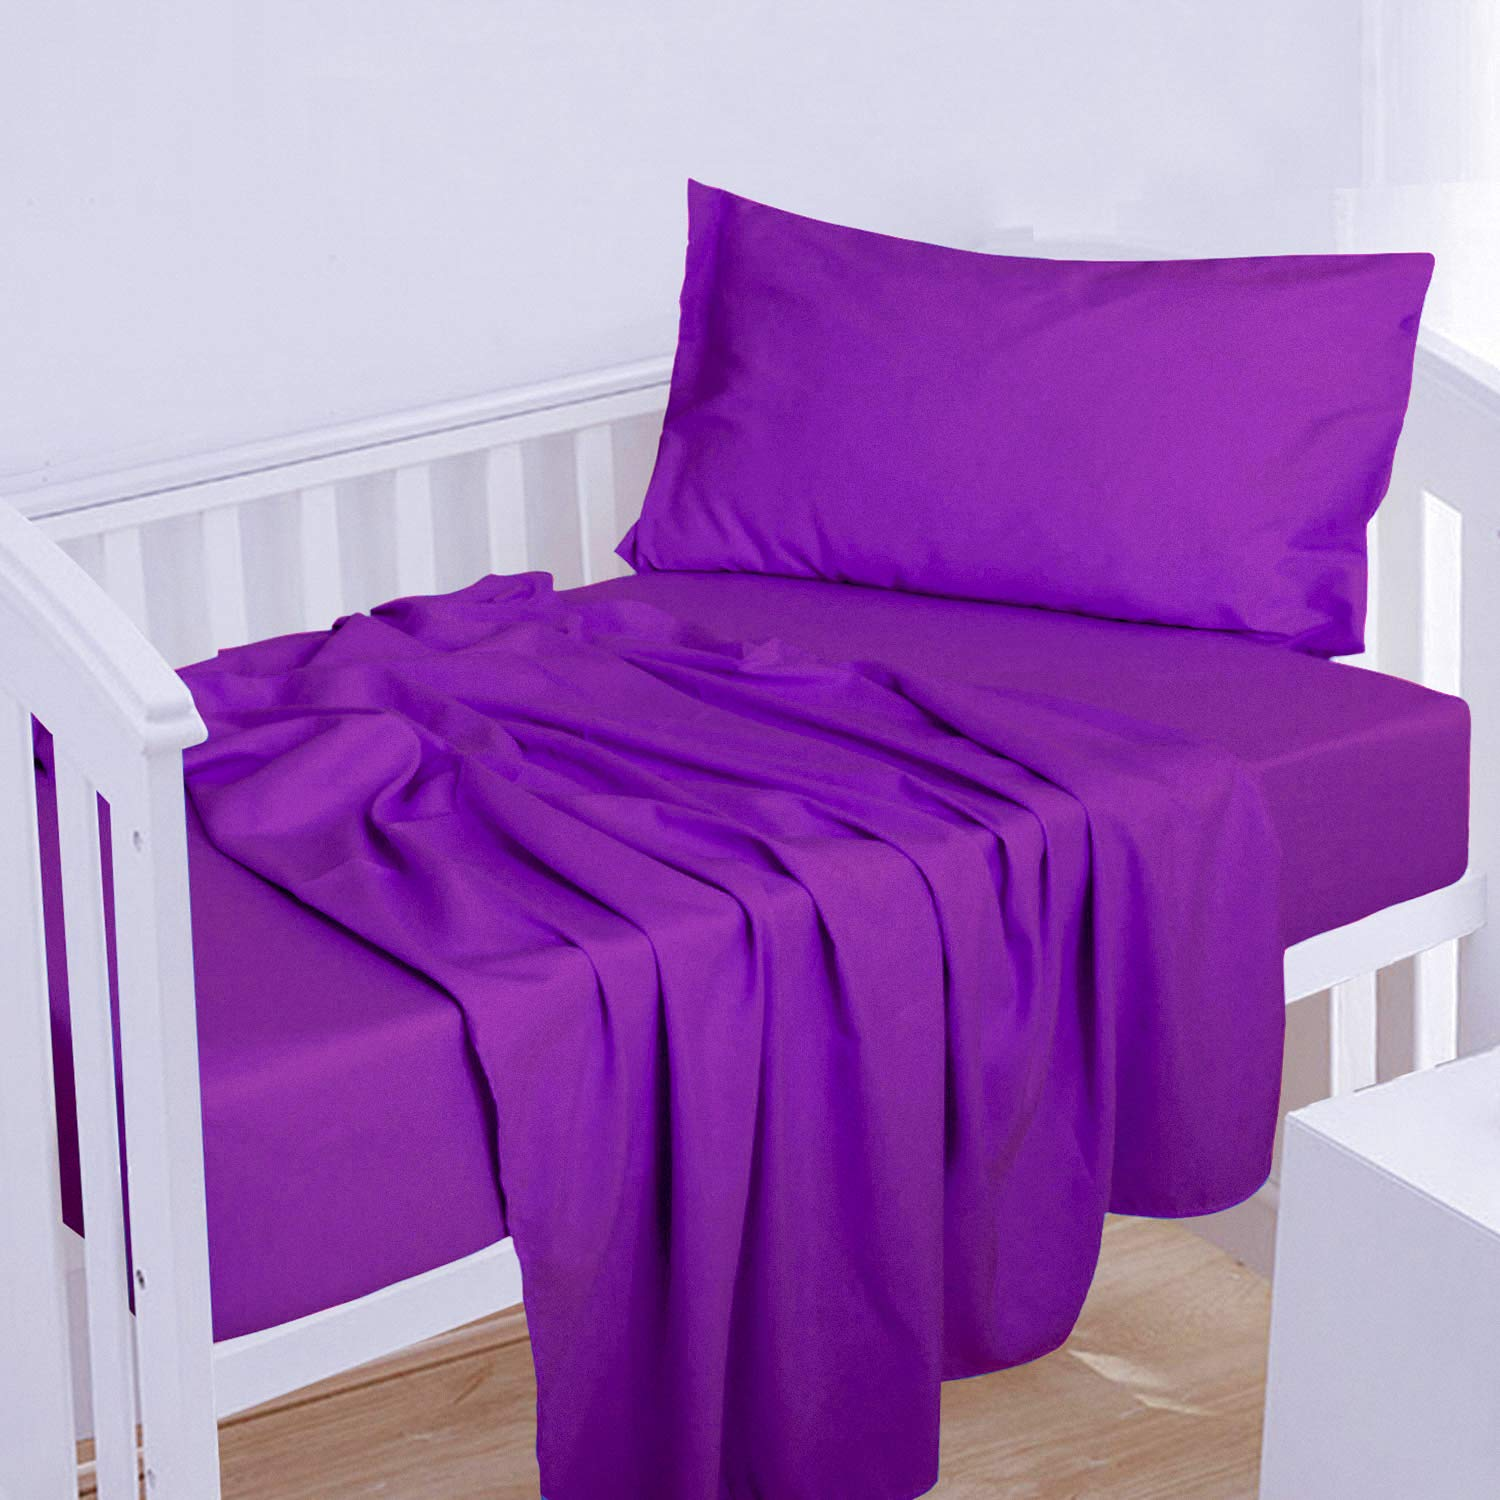 NTBAY Complete Free Shipping 3-Piece Microfiber Toddler Sheet Crib Popular product Fitted Solid Sh Set